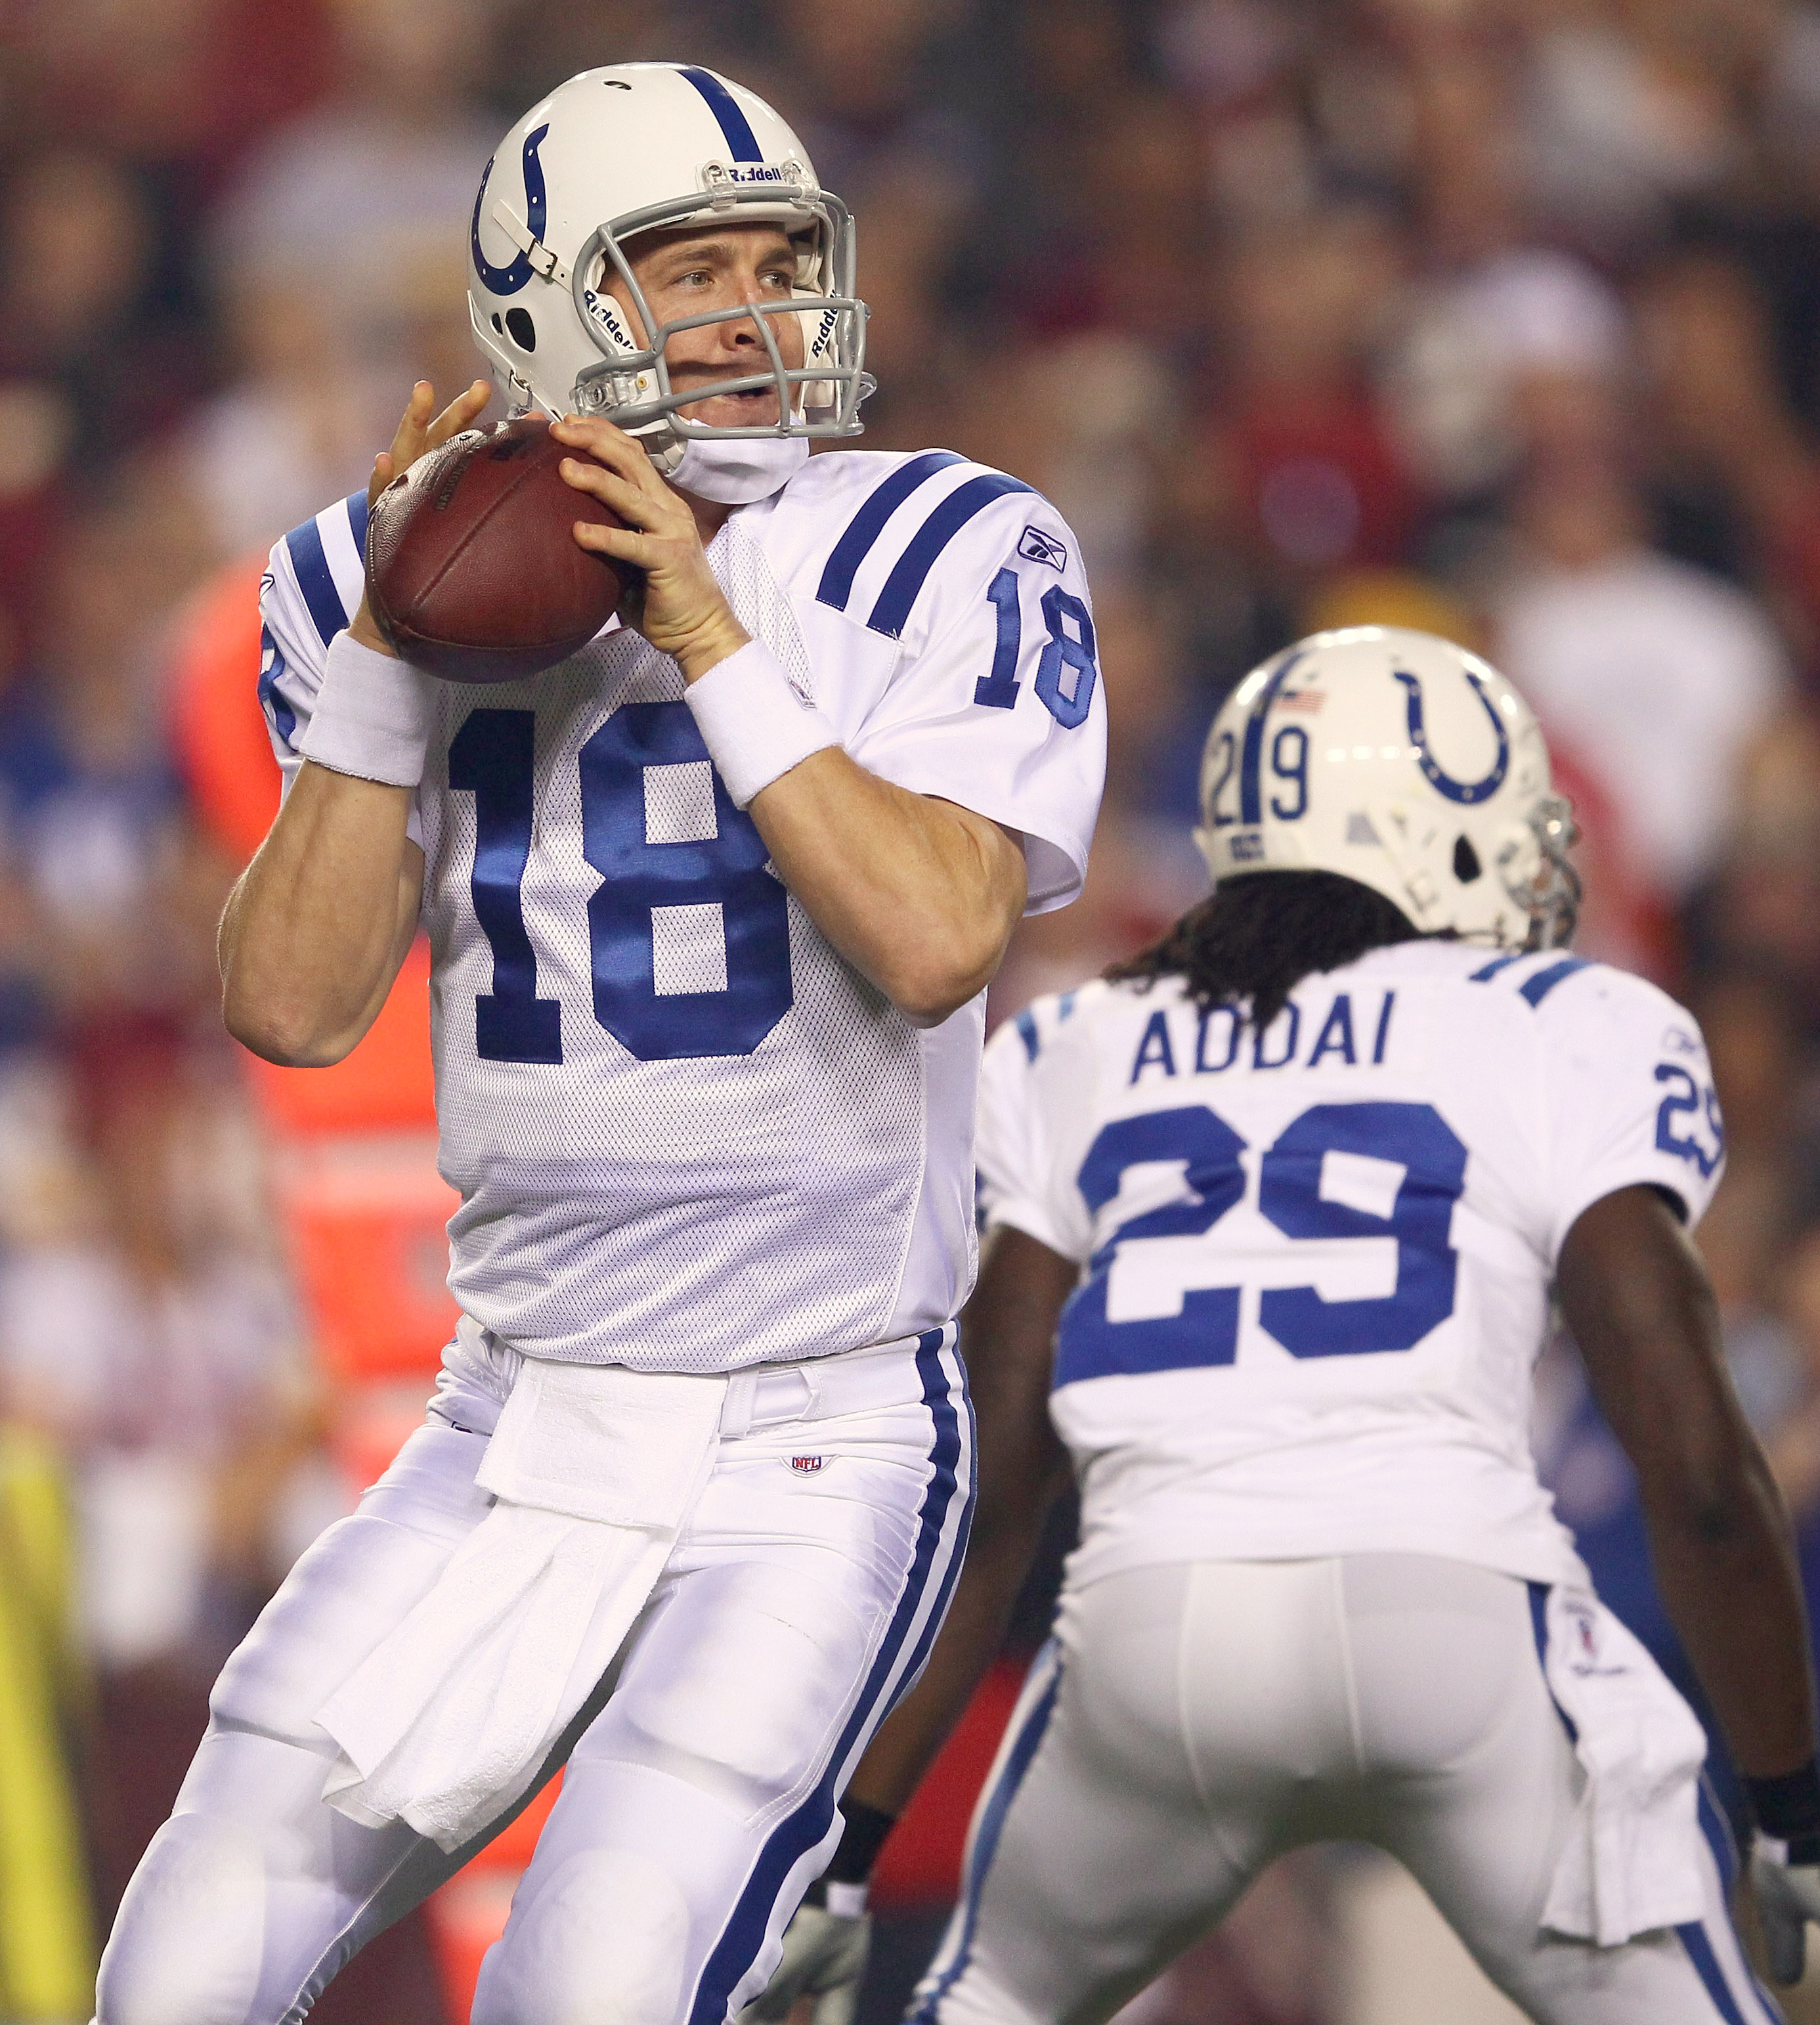 LANDOVER, MD - OCTOBER 17:  Quarterback Peyton Manning #18 of the Indianapolis Colts throws a pass against the Washington Redskins at FedExField on October 17, 2010 in Landover, Maryland.  (Photo by Win McNamee/Getty Images)